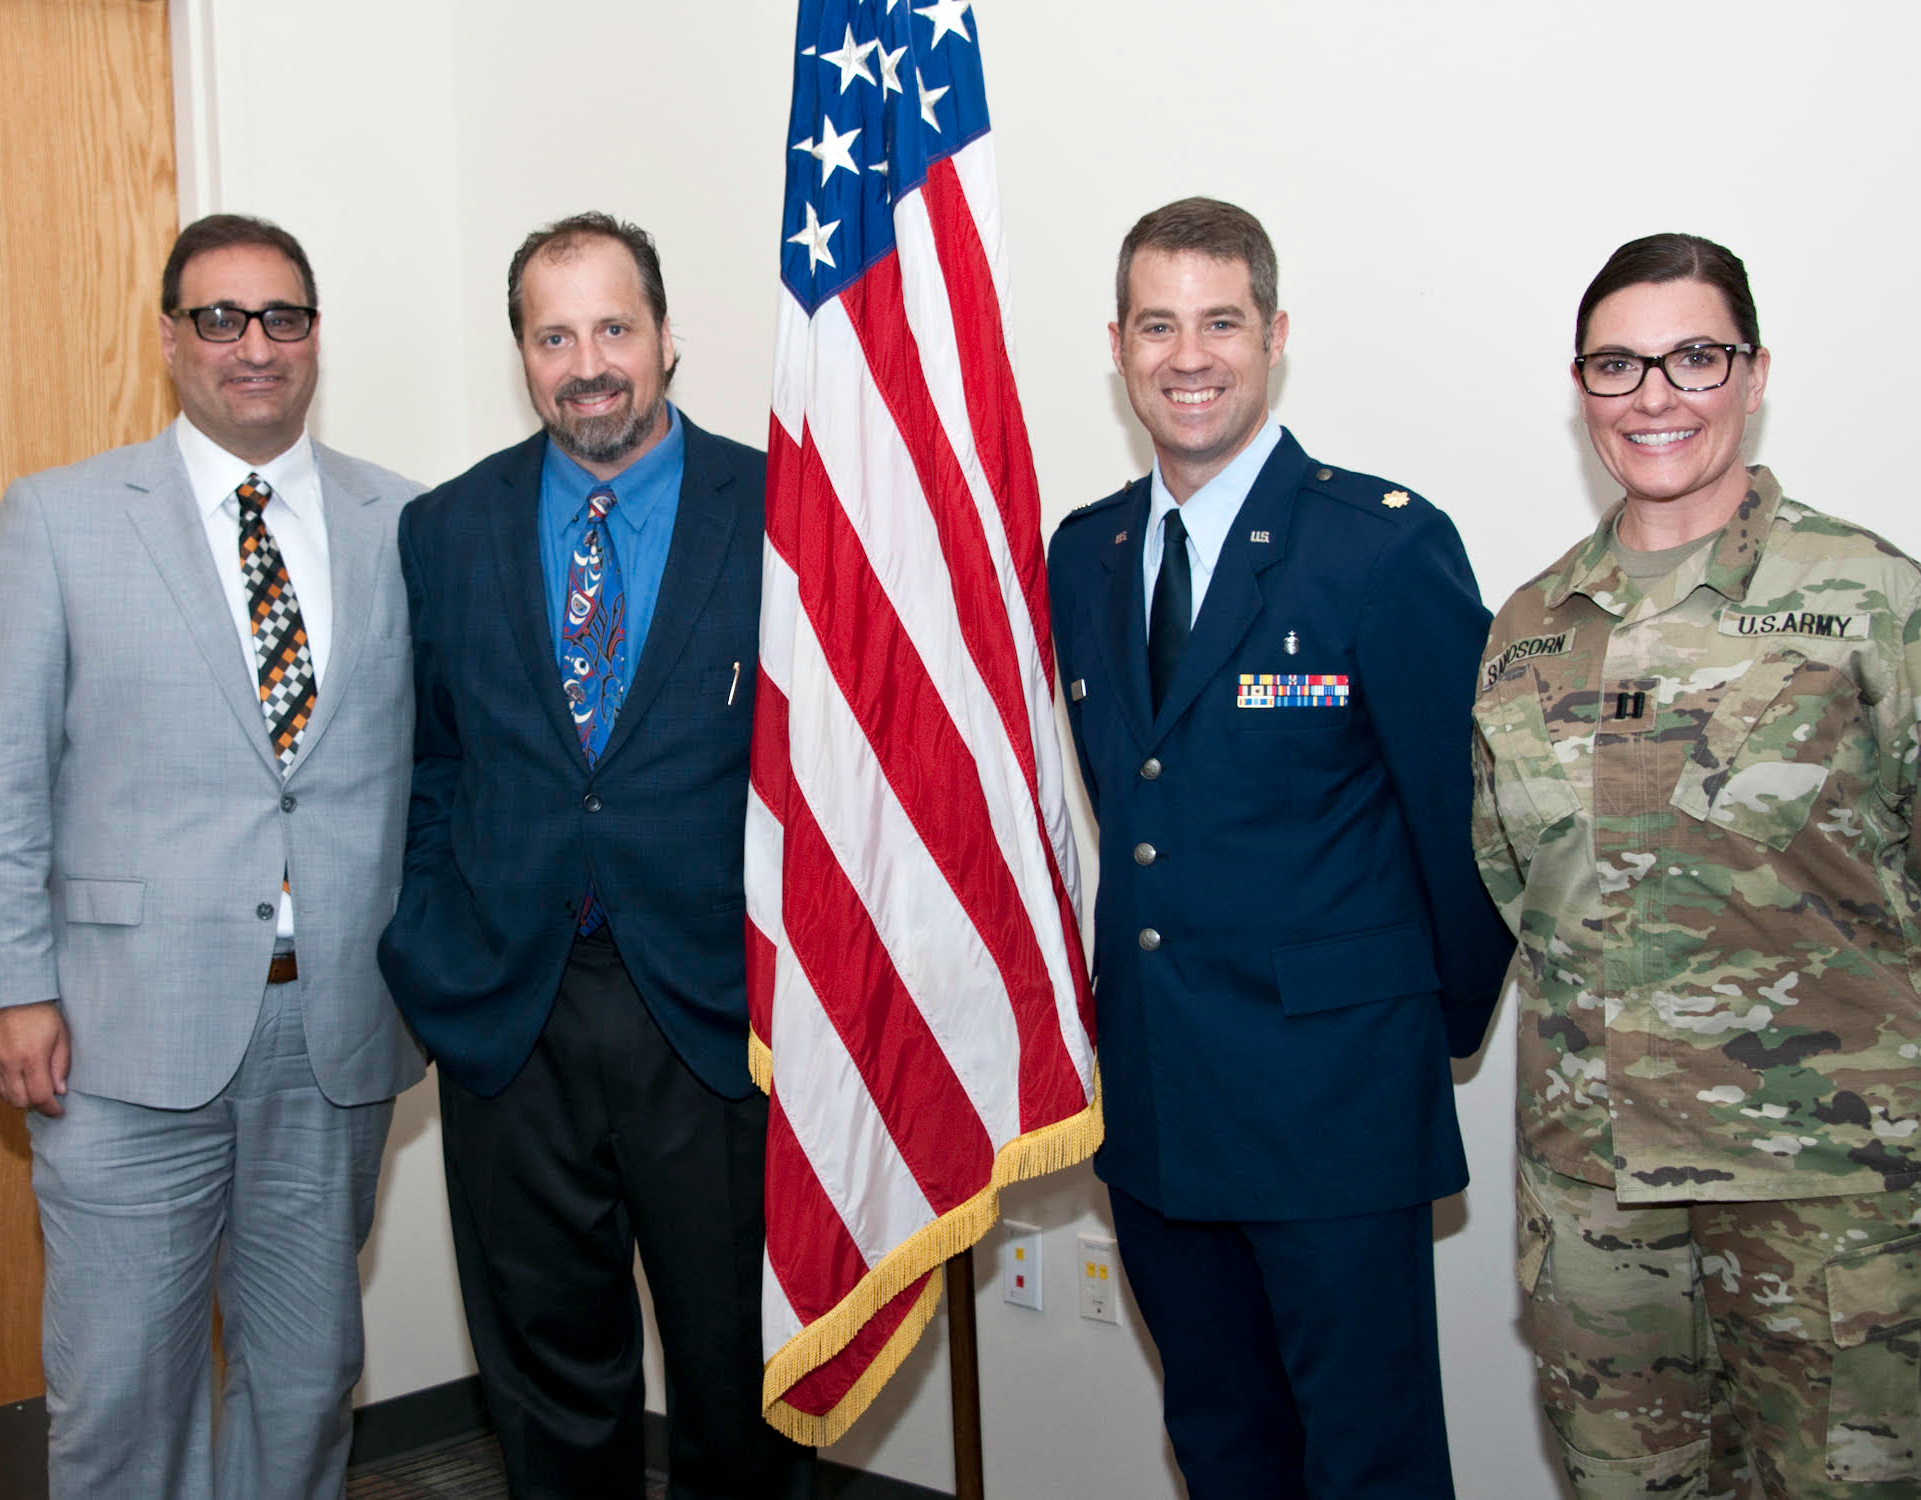 Dr. Thomas Tablot, Dr. Eric B. Bauman, Lt. Col. Neubauer, and Cpt. Angela Samosorn